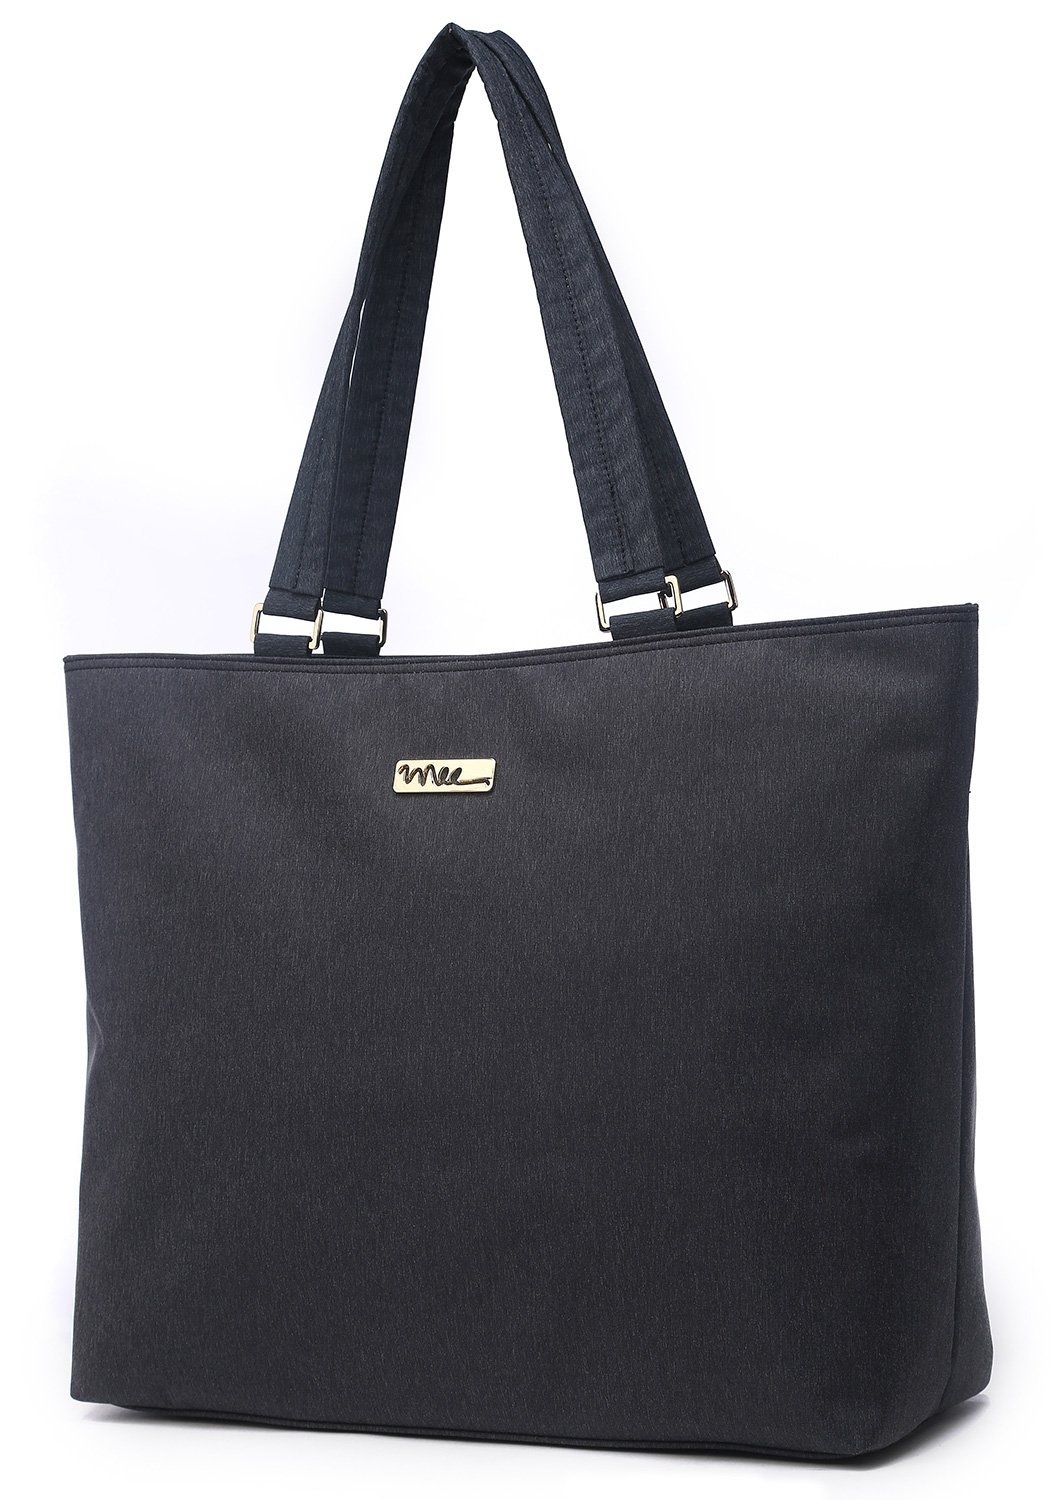 NNEE 15 15.6 Inch Water Resistance Nylon Laptop Tote Bag Computer Travel Carrying Bag - Black Gray